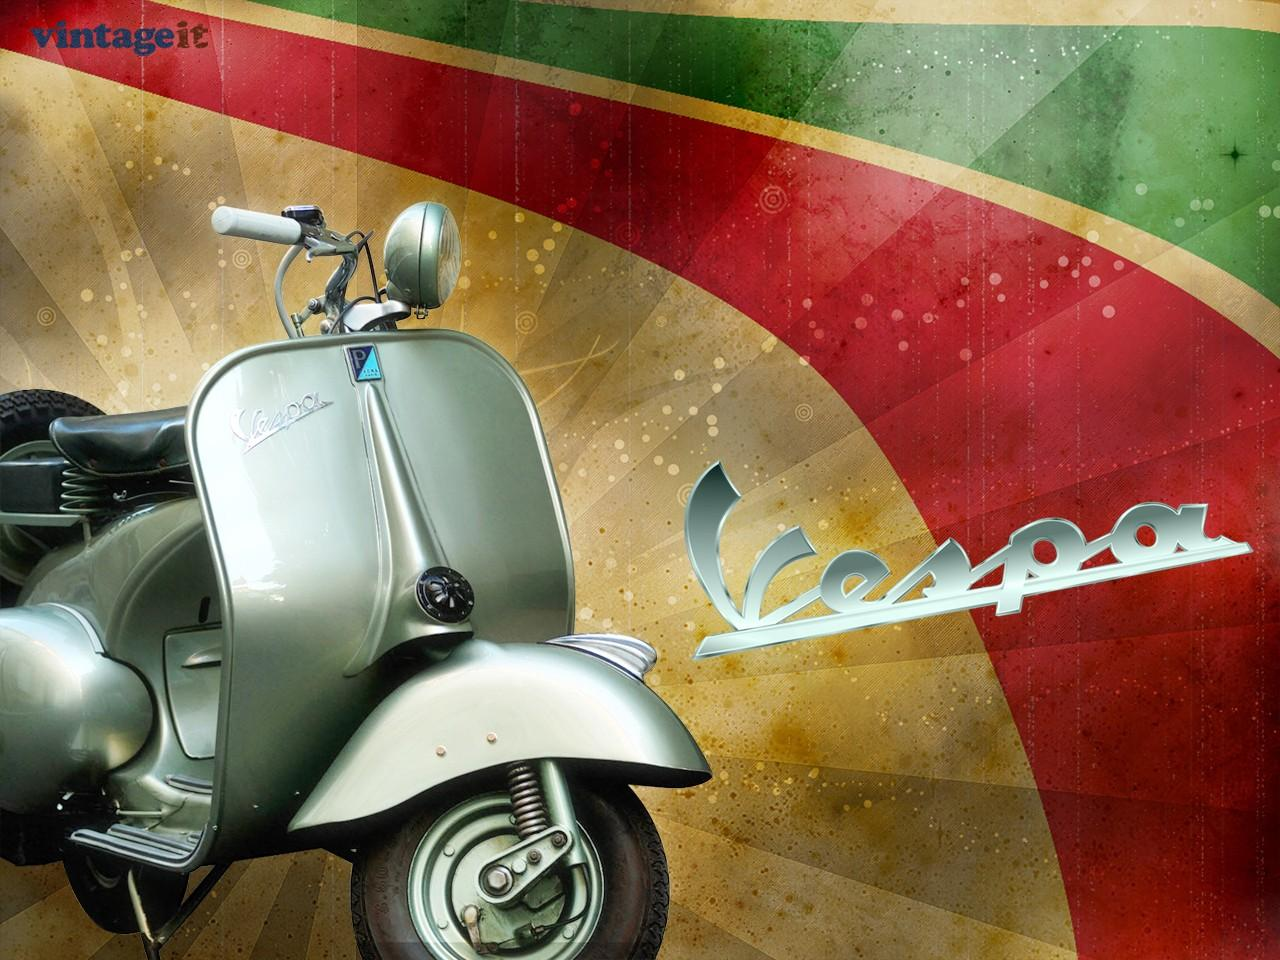 Vespa wallpapers HD quality